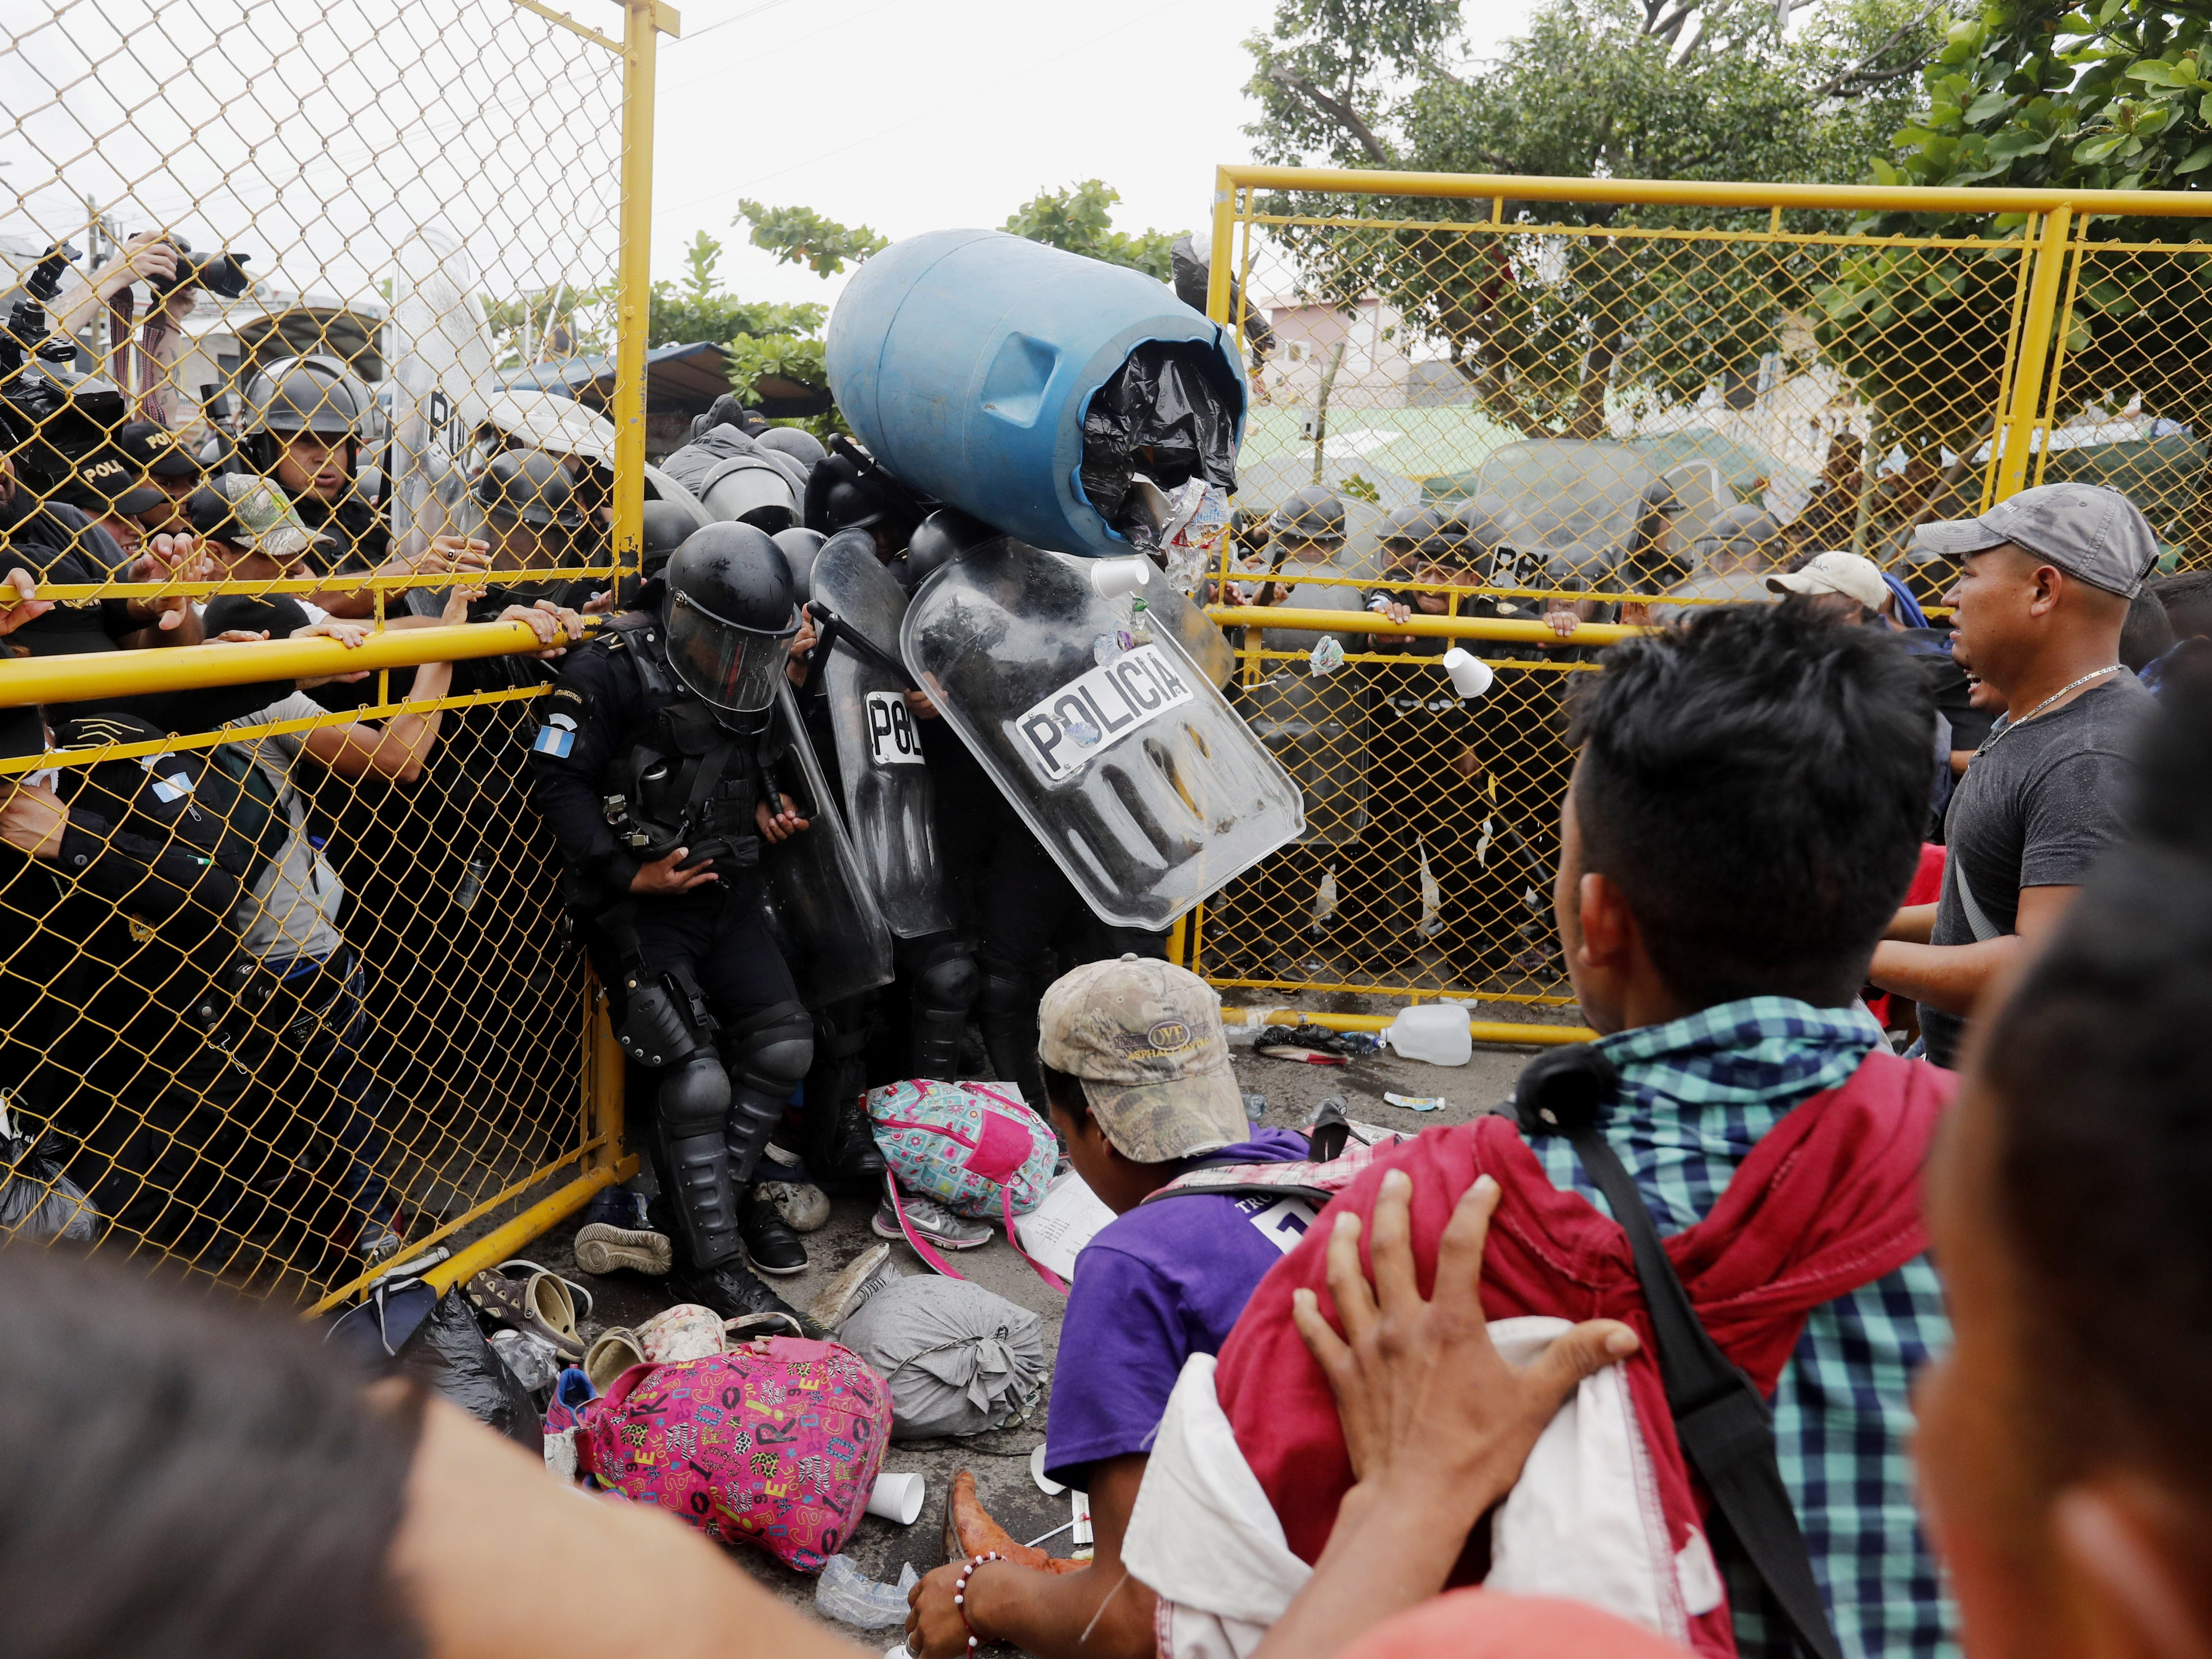 Migrants of the second caravan clash with the Guatemalan Police, in Tecun Uman, Guatemala on Oct. 28, 2018. Thousands of migrants broke the border fence between Guatemala and Mexico and crossed into the Mexican territory.